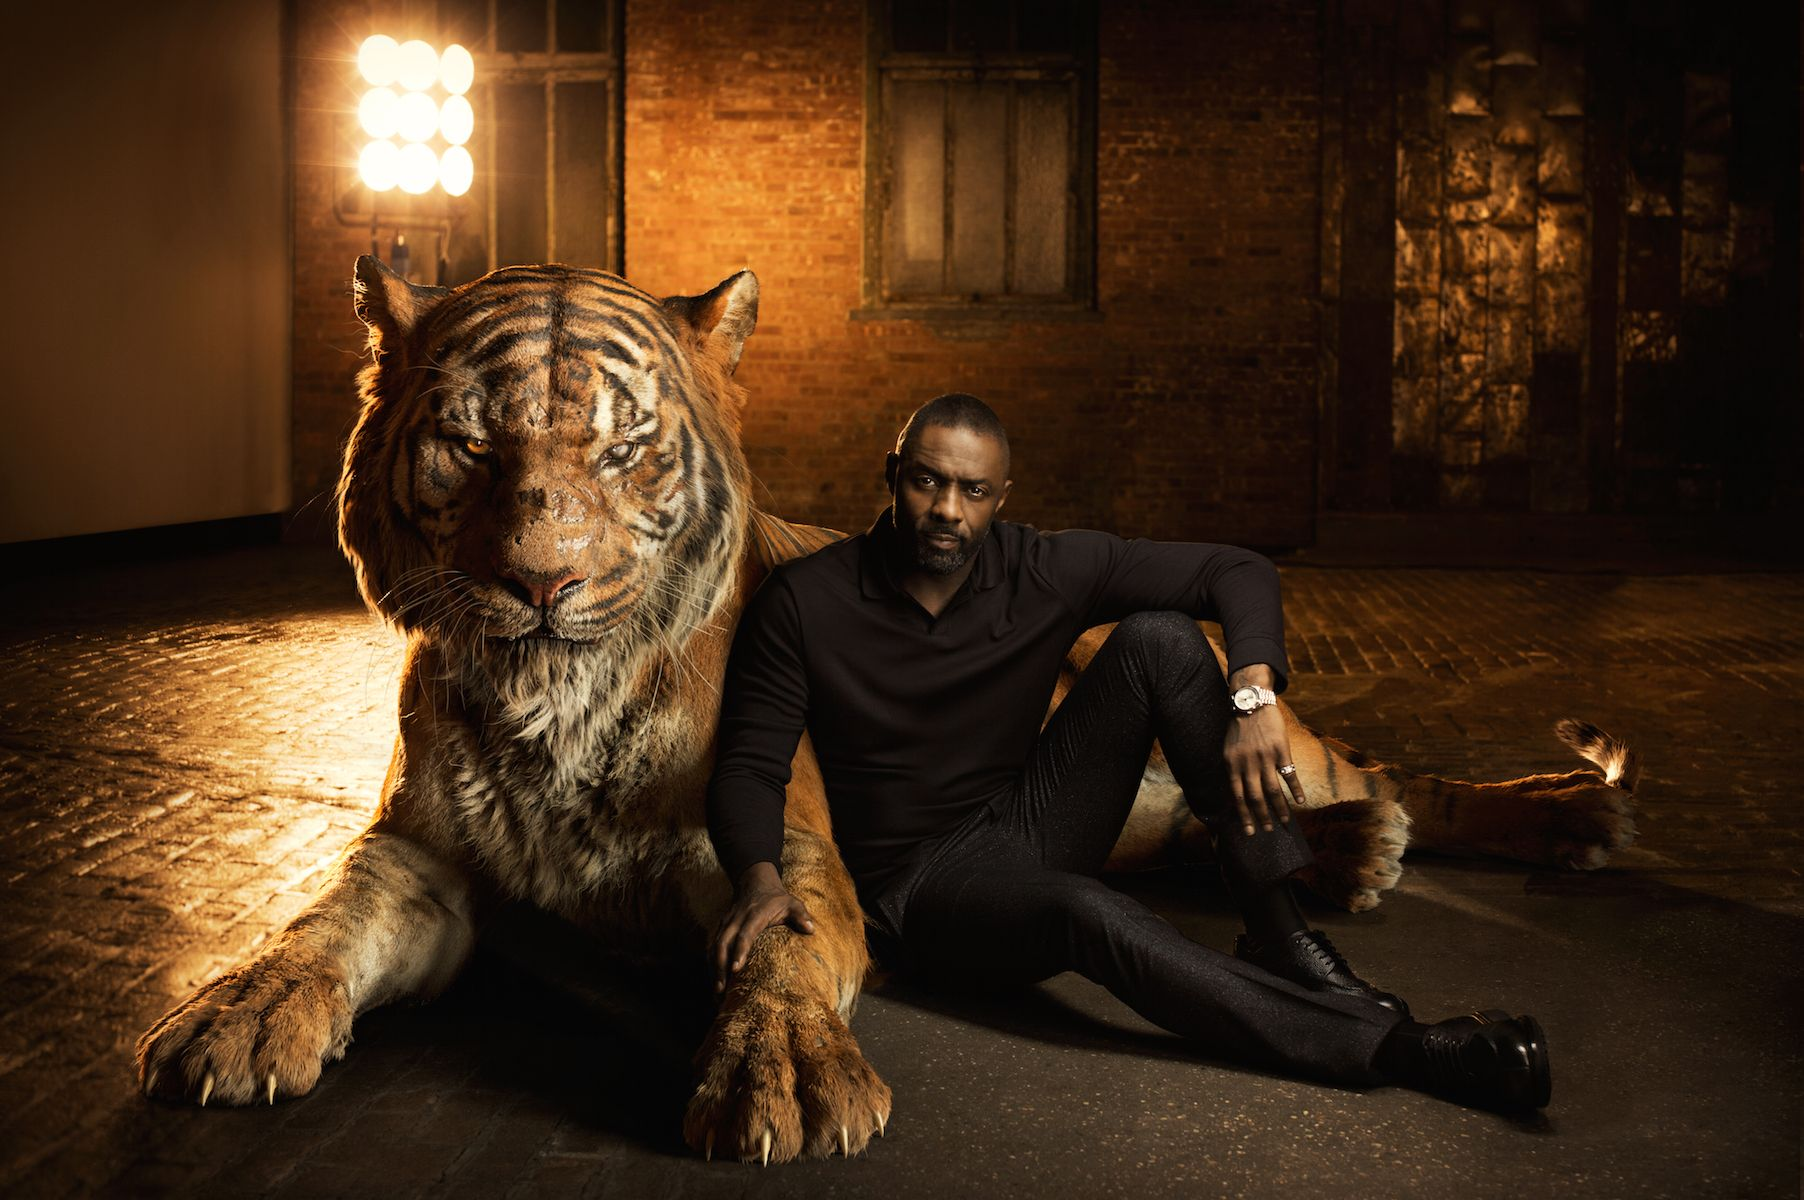 This photoshoot of the jungle book cast with their animal counterparts is equal parts eerie and cool